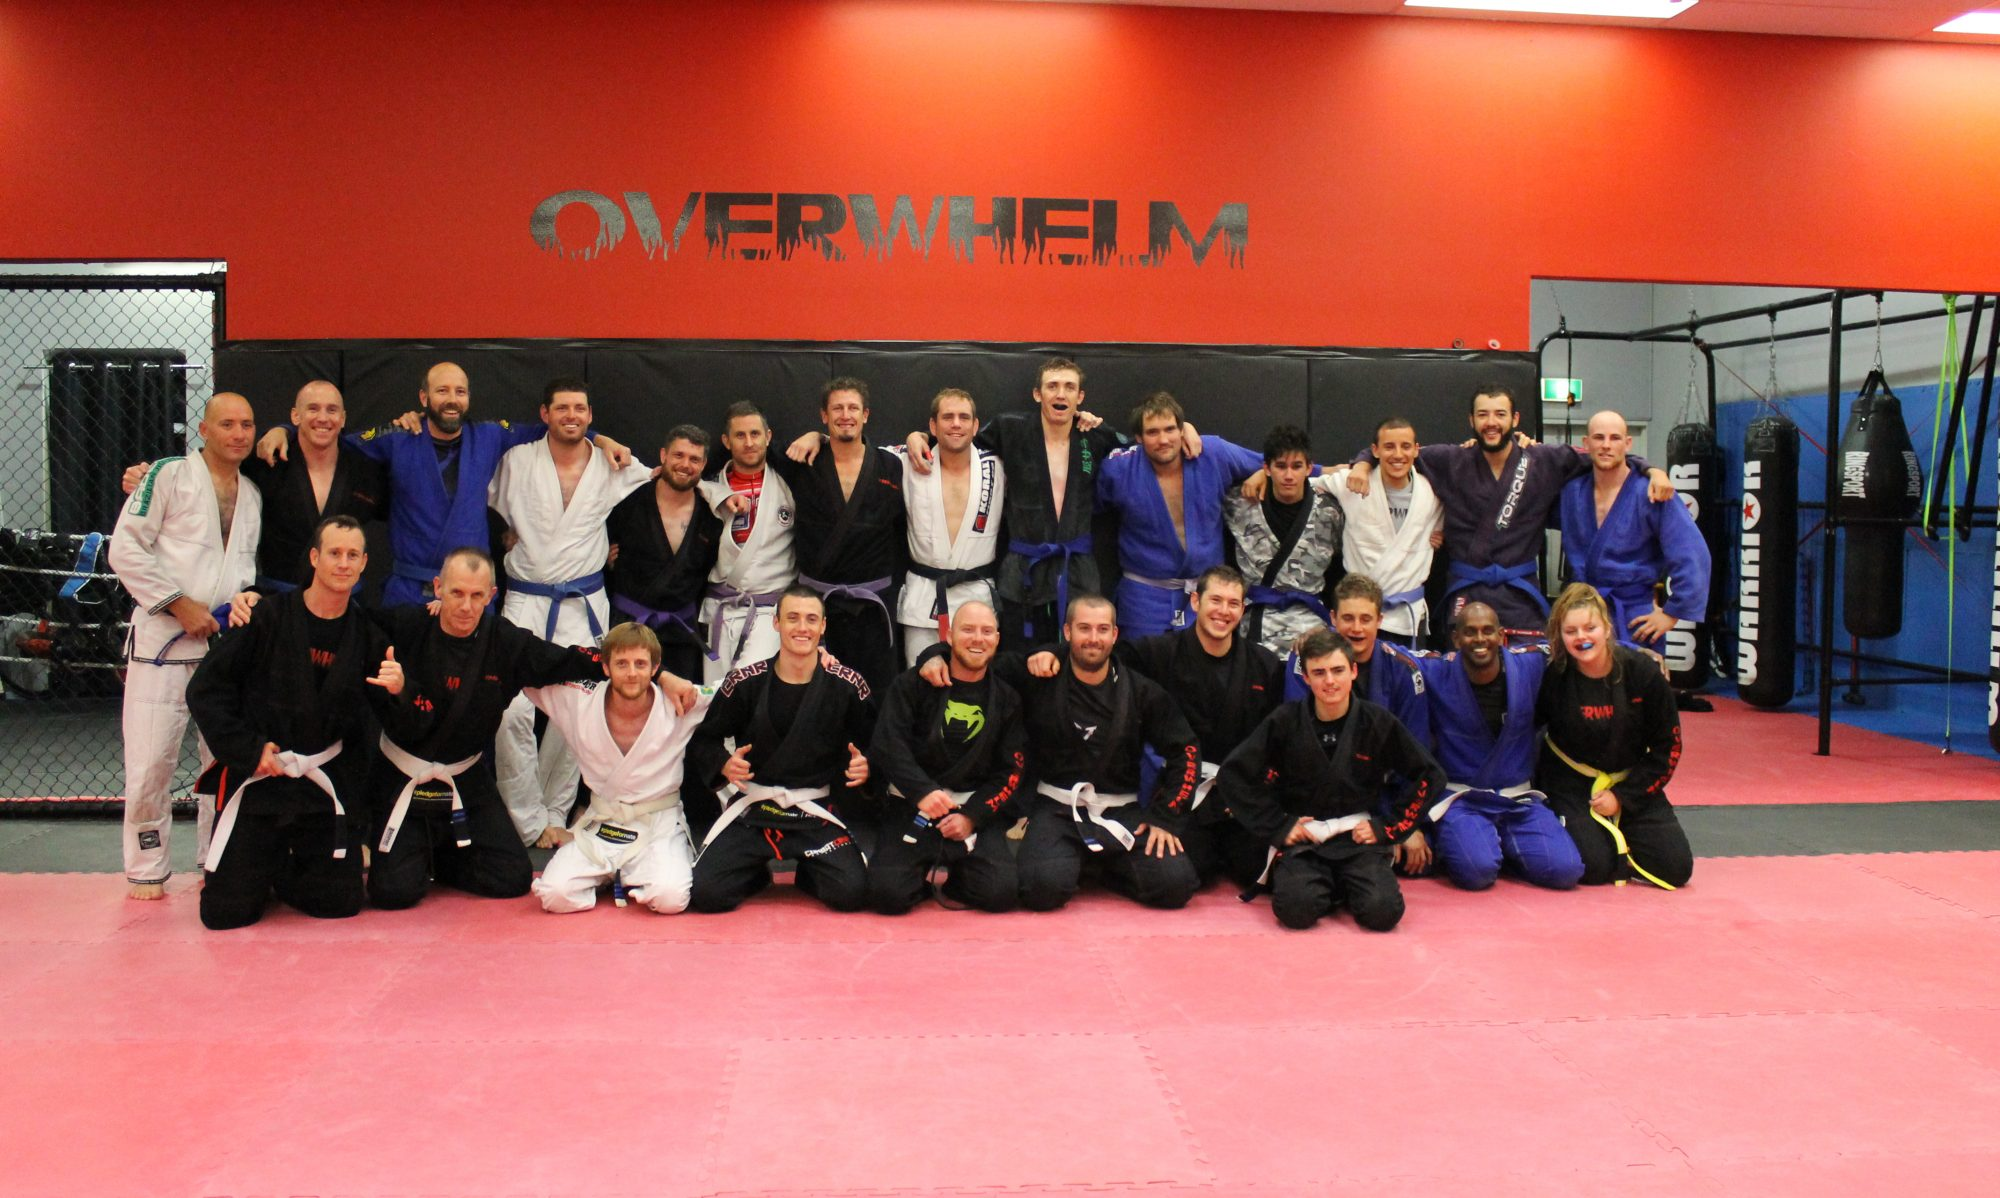 Overwhelm Mixed Martial Arts